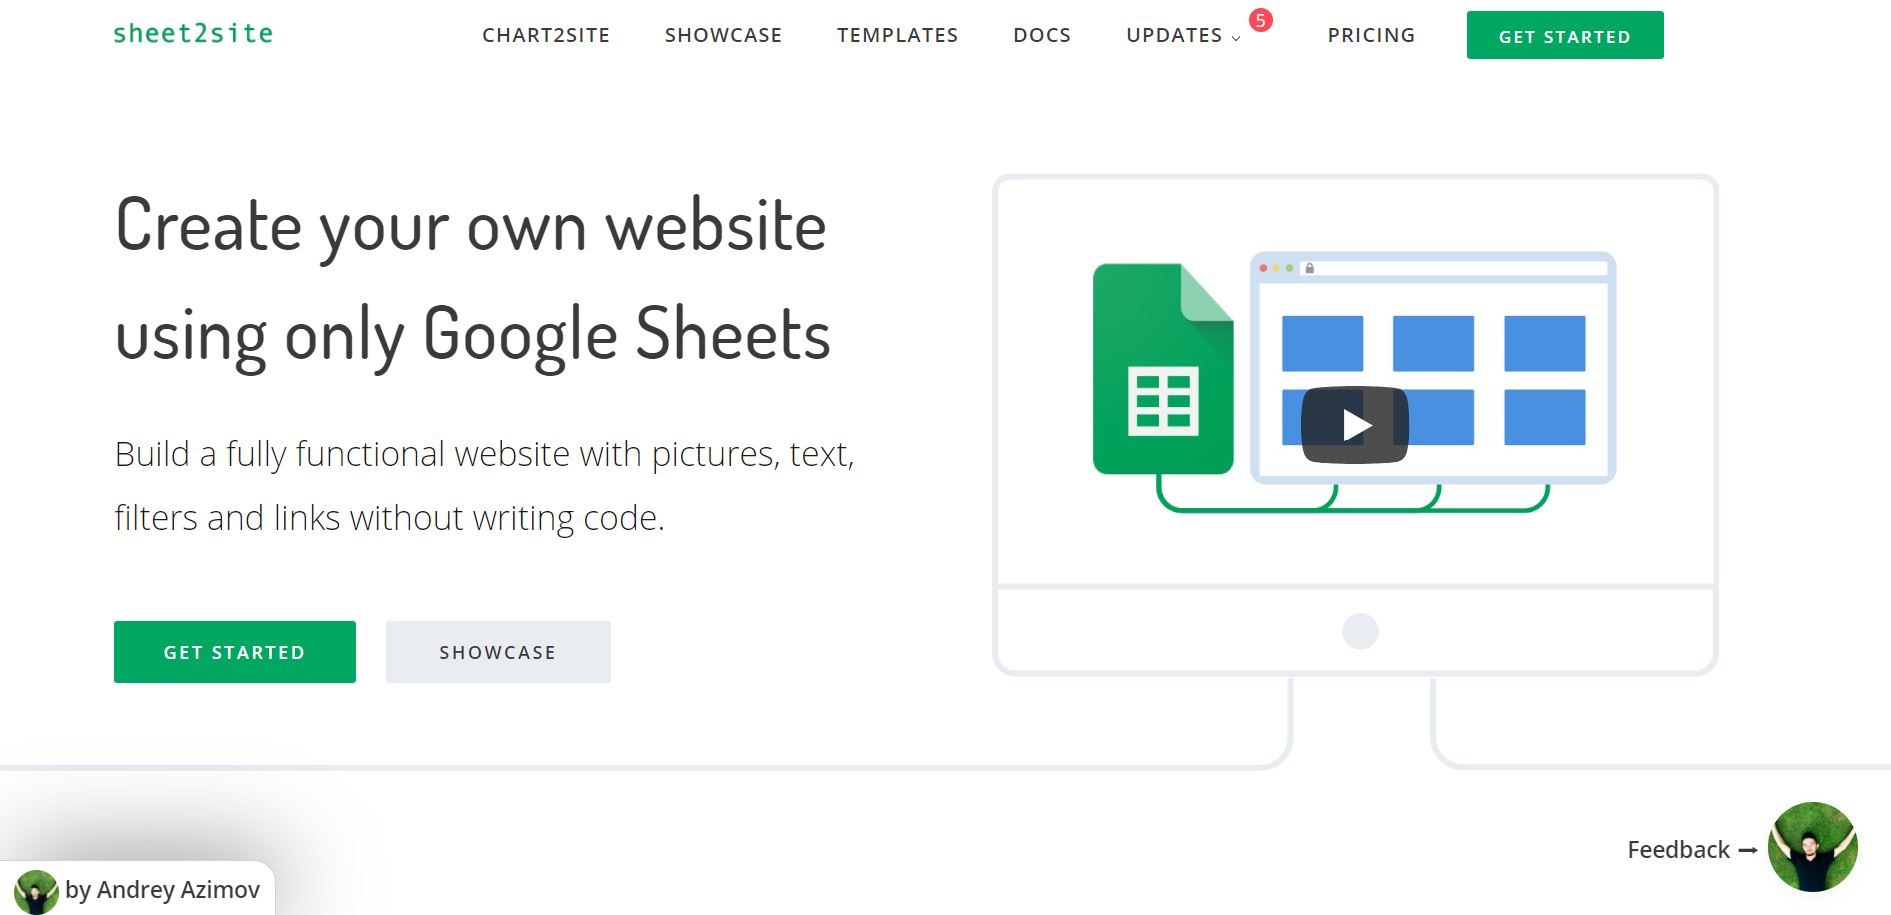 side project tools - sheet2site